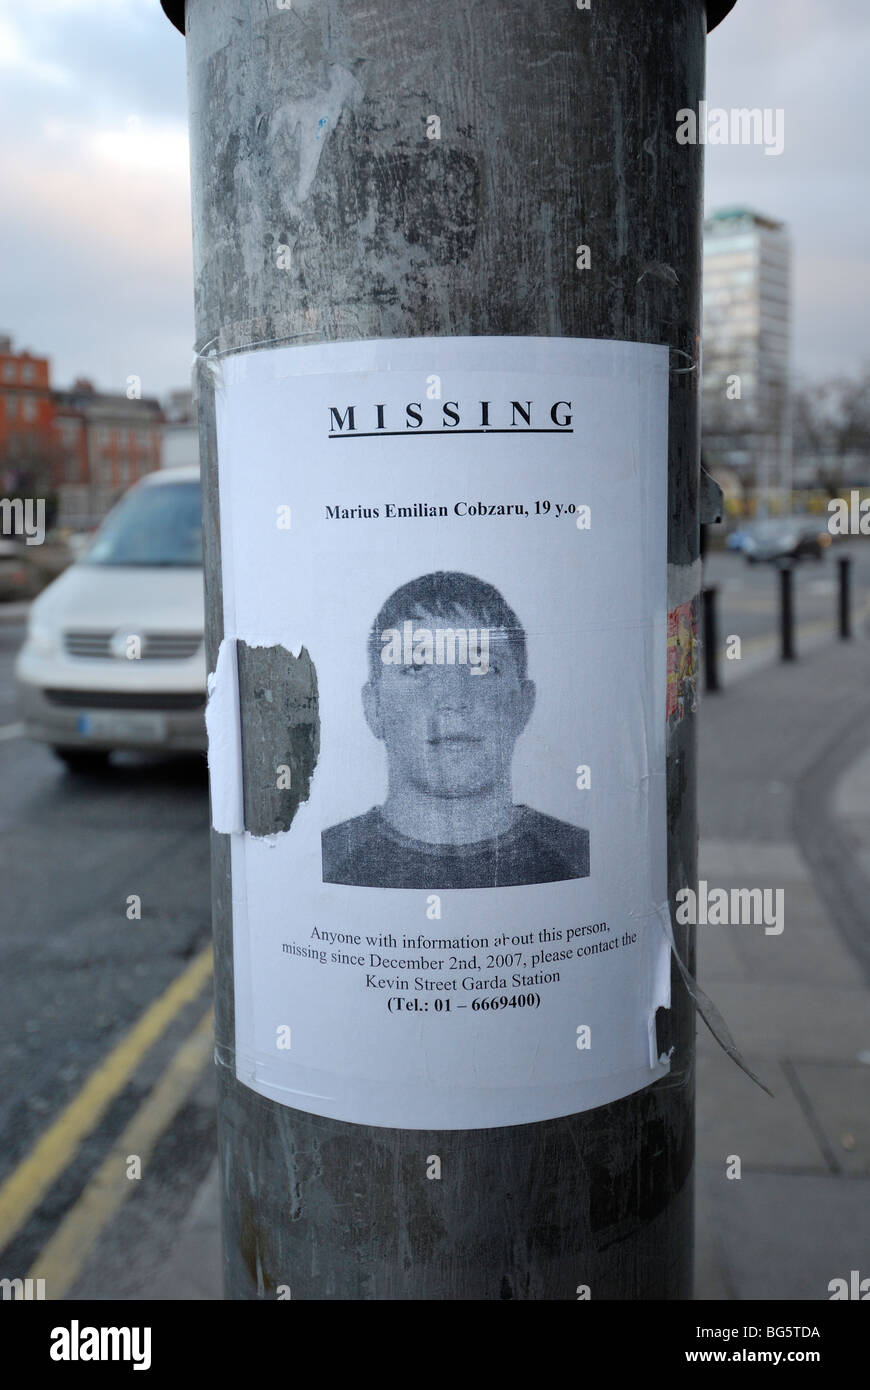 Missing Person Poster On Lamp Post In Dublin Ireland  Missing Person Flyer